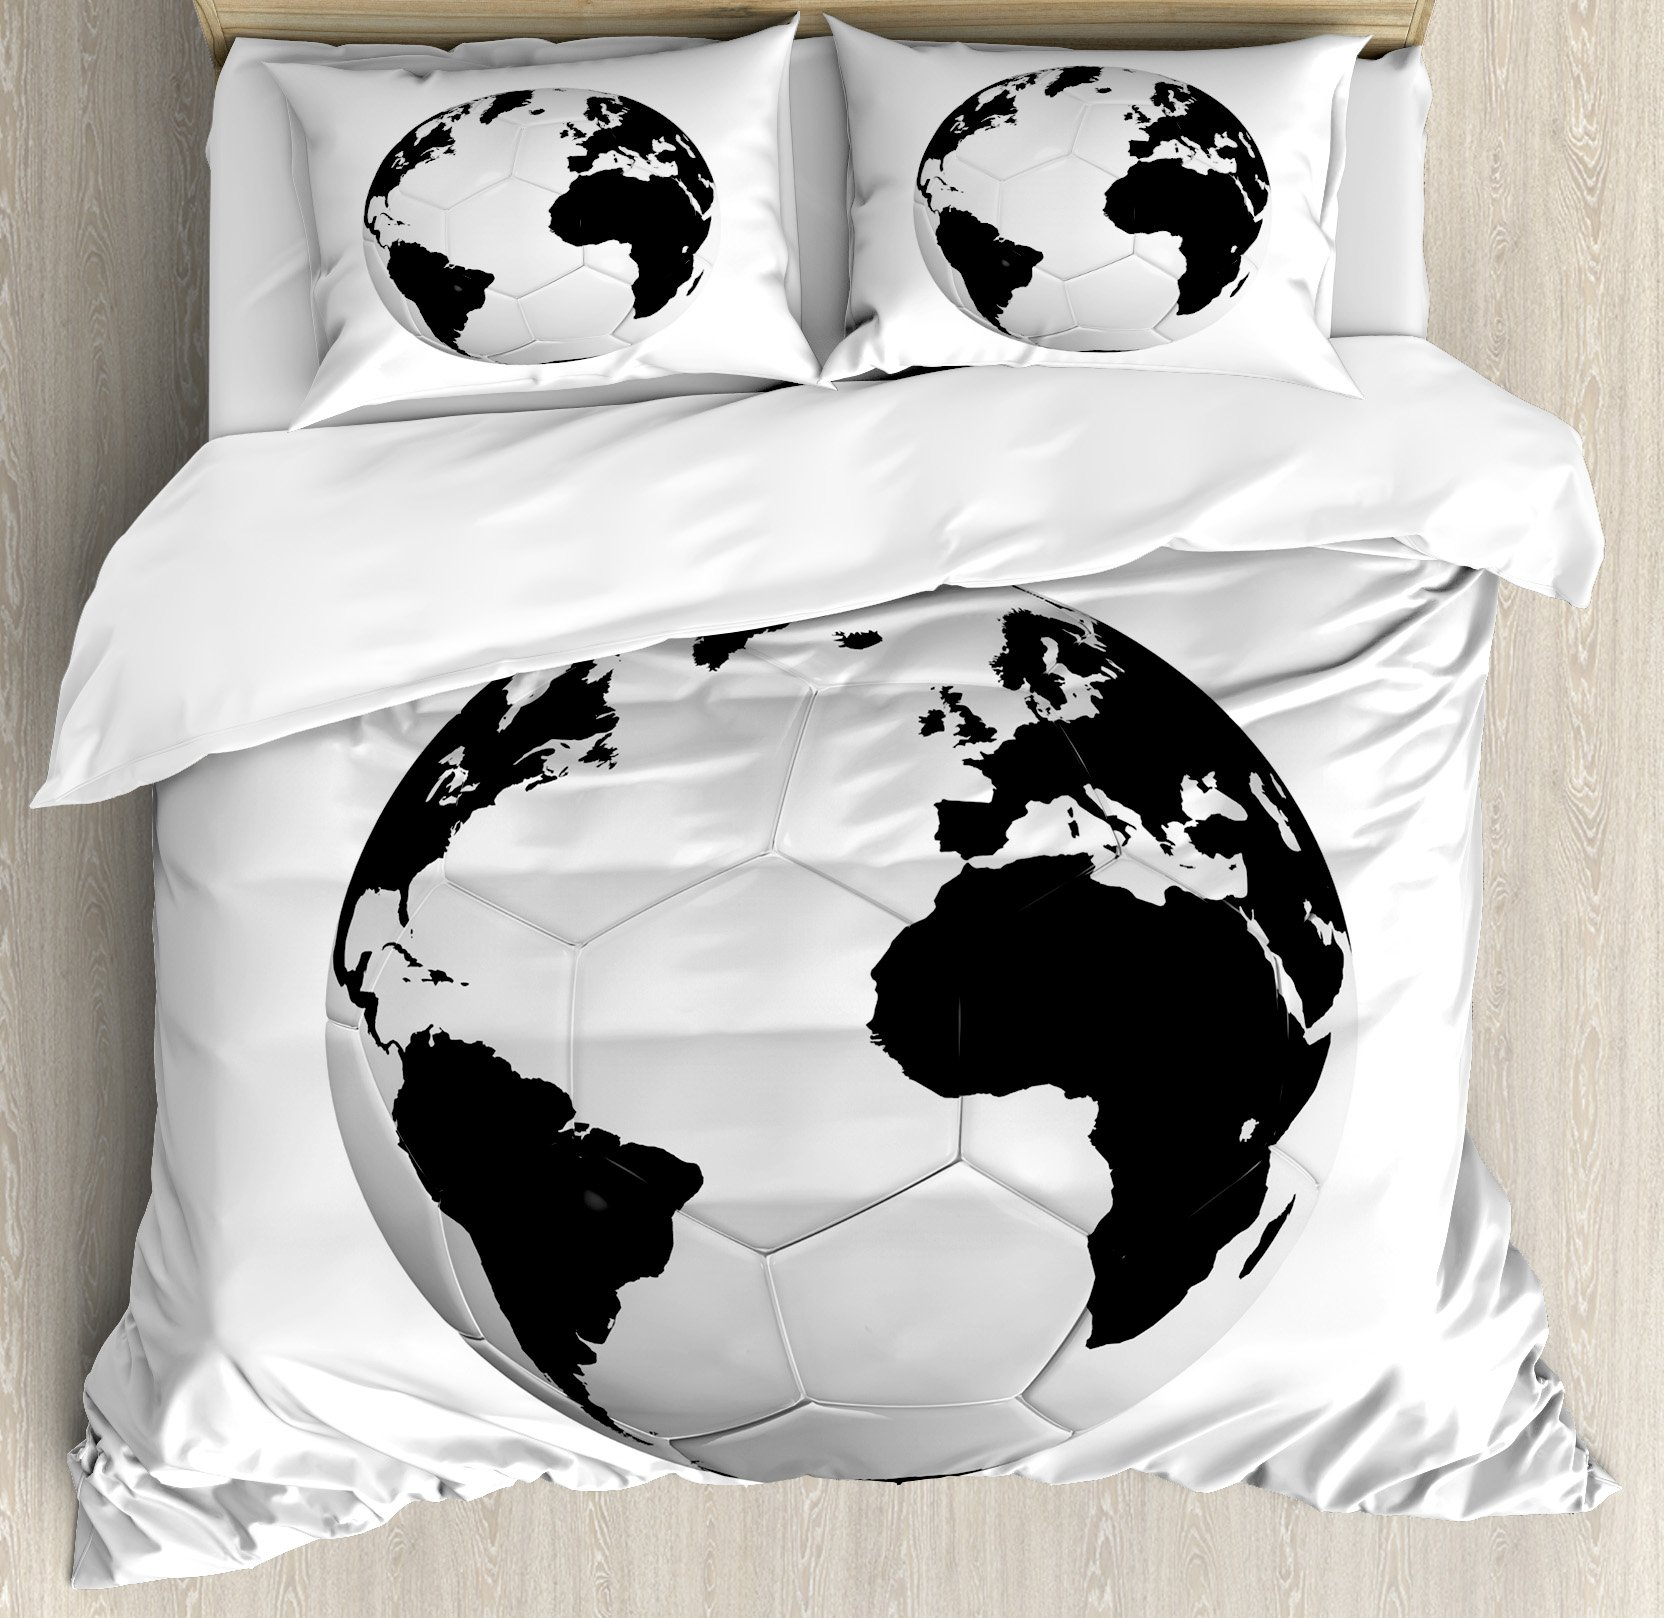 Sports Decor King Size Duvet Cover Set by Ambesonne, Soccer Ball with World Map Football Cup 2010 Entertaining Professional Game, Decorative 3 Piece Bedding Set with 2 Pillow Shams